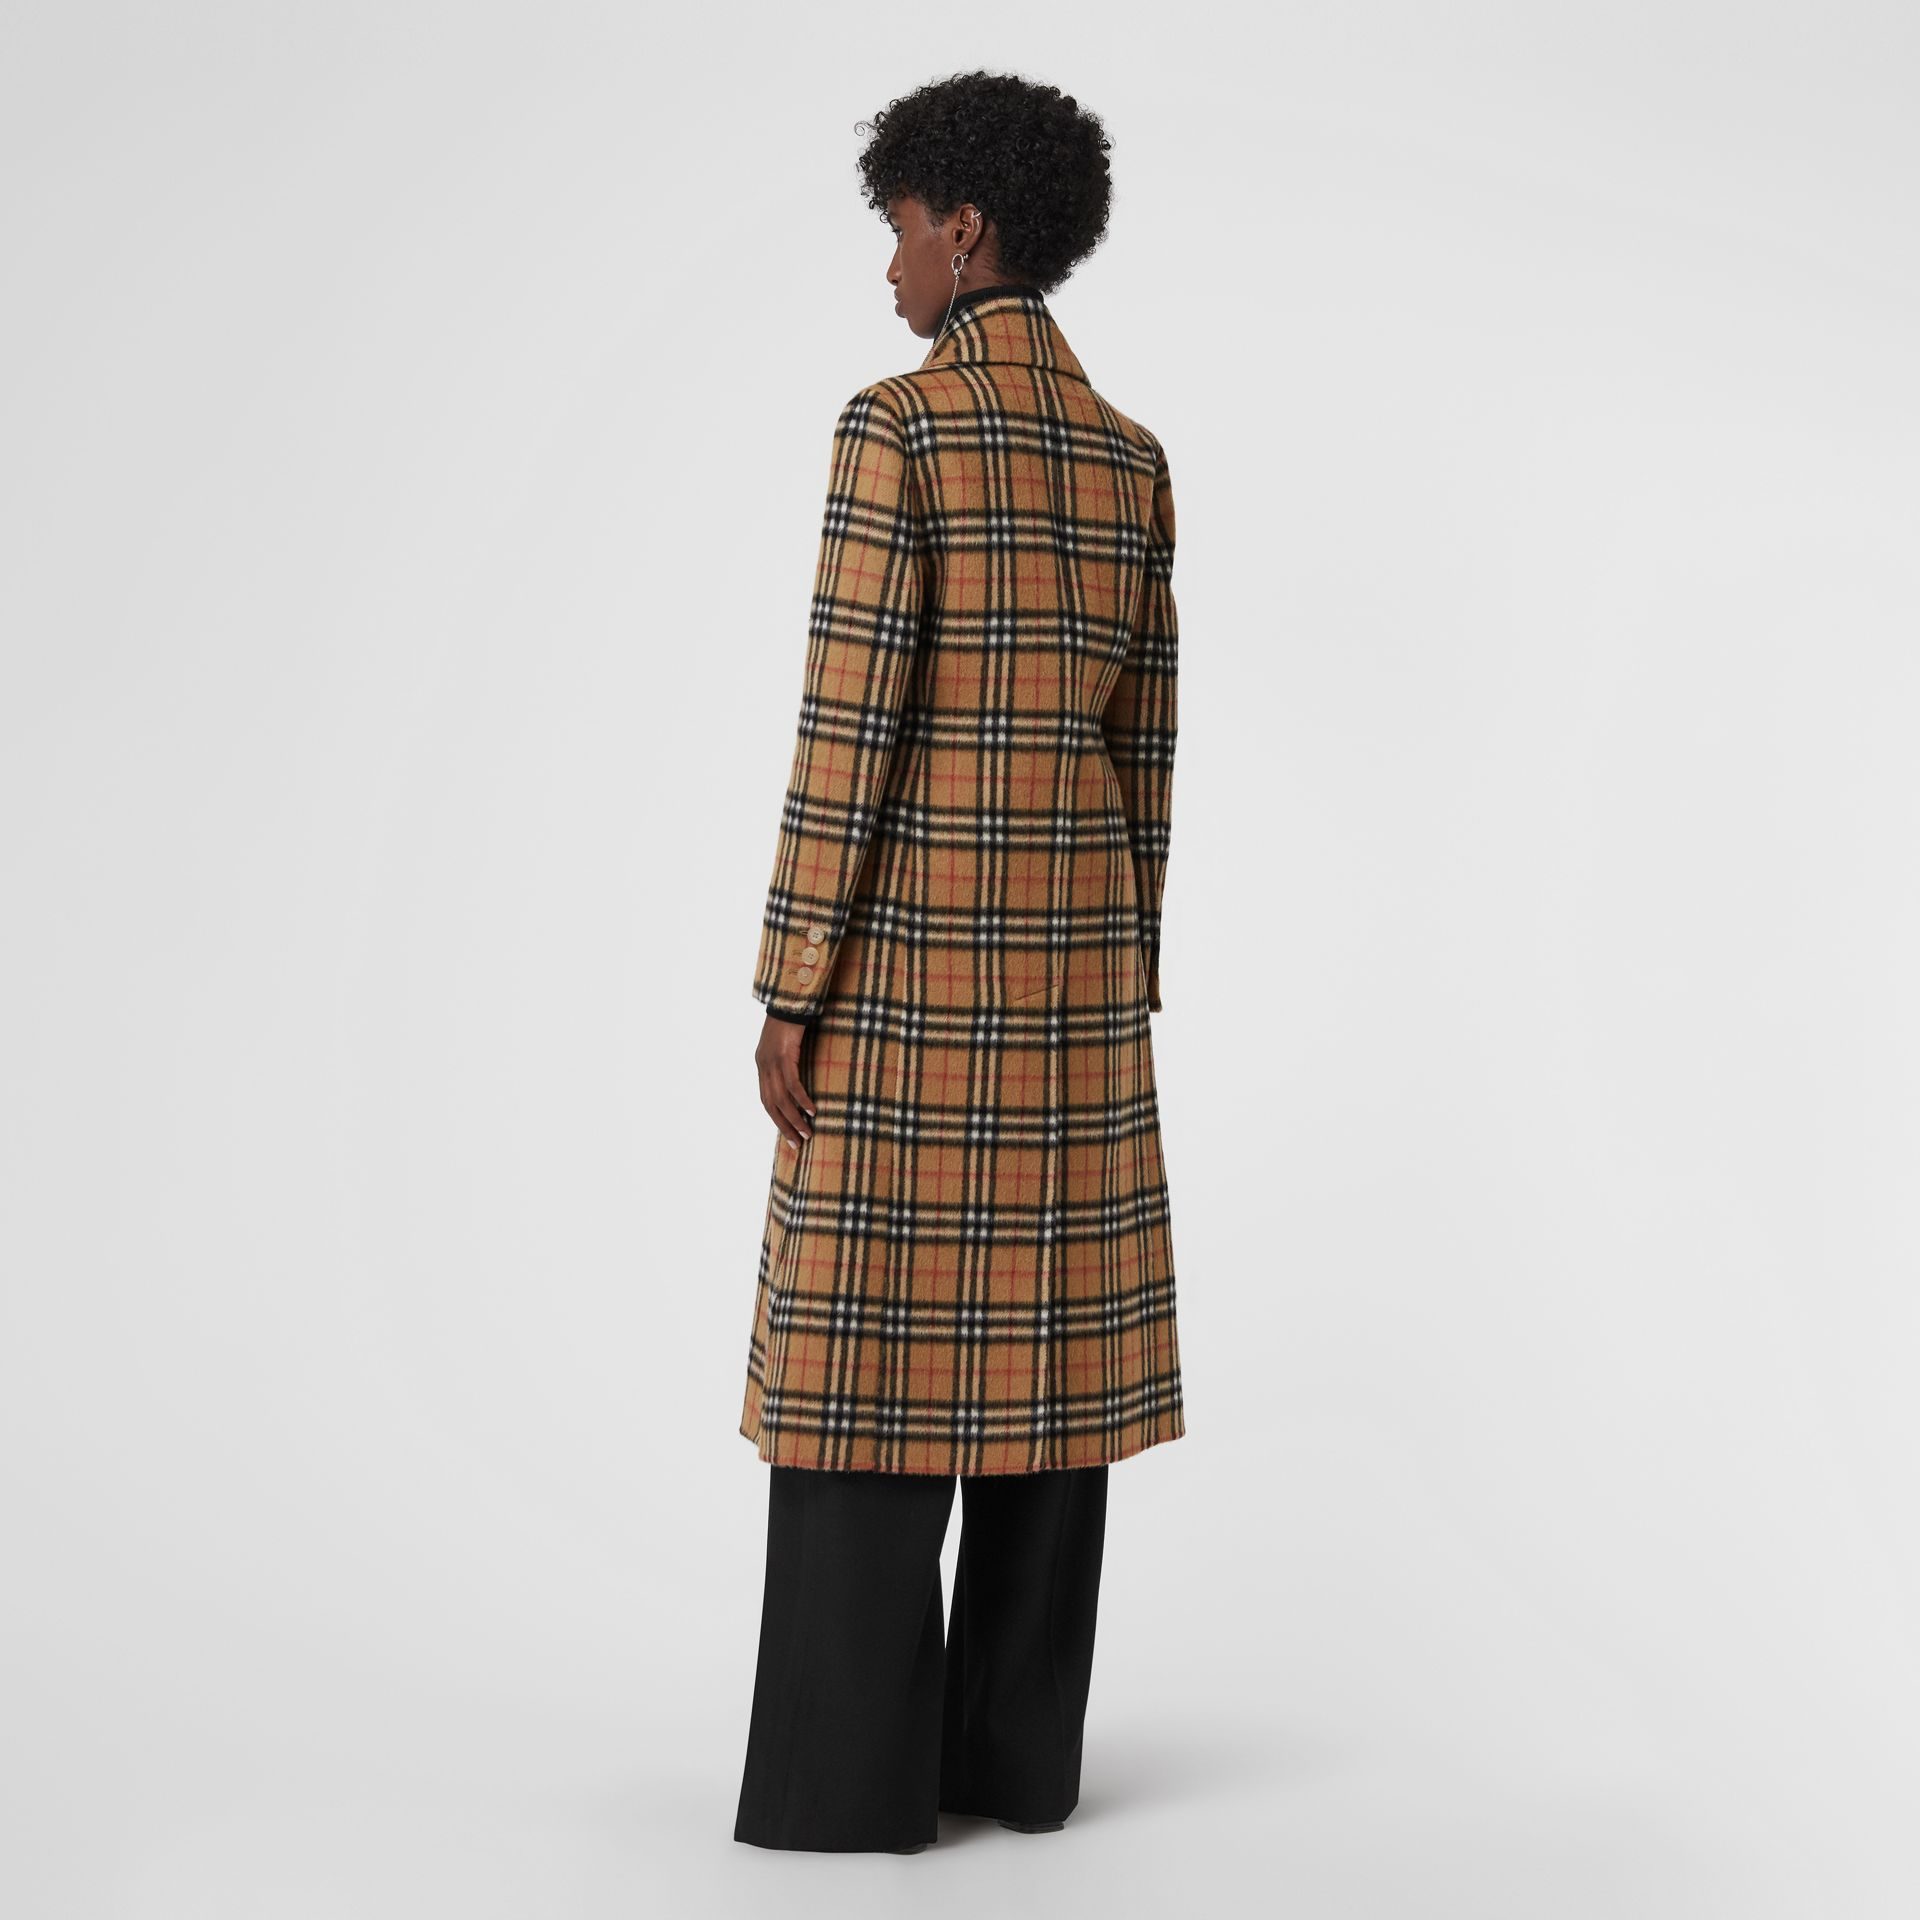 Manteau ajusté en alpaga à motif Vintage check (Jaune Antique) - Femme | Burberry - photo de la galerie 2